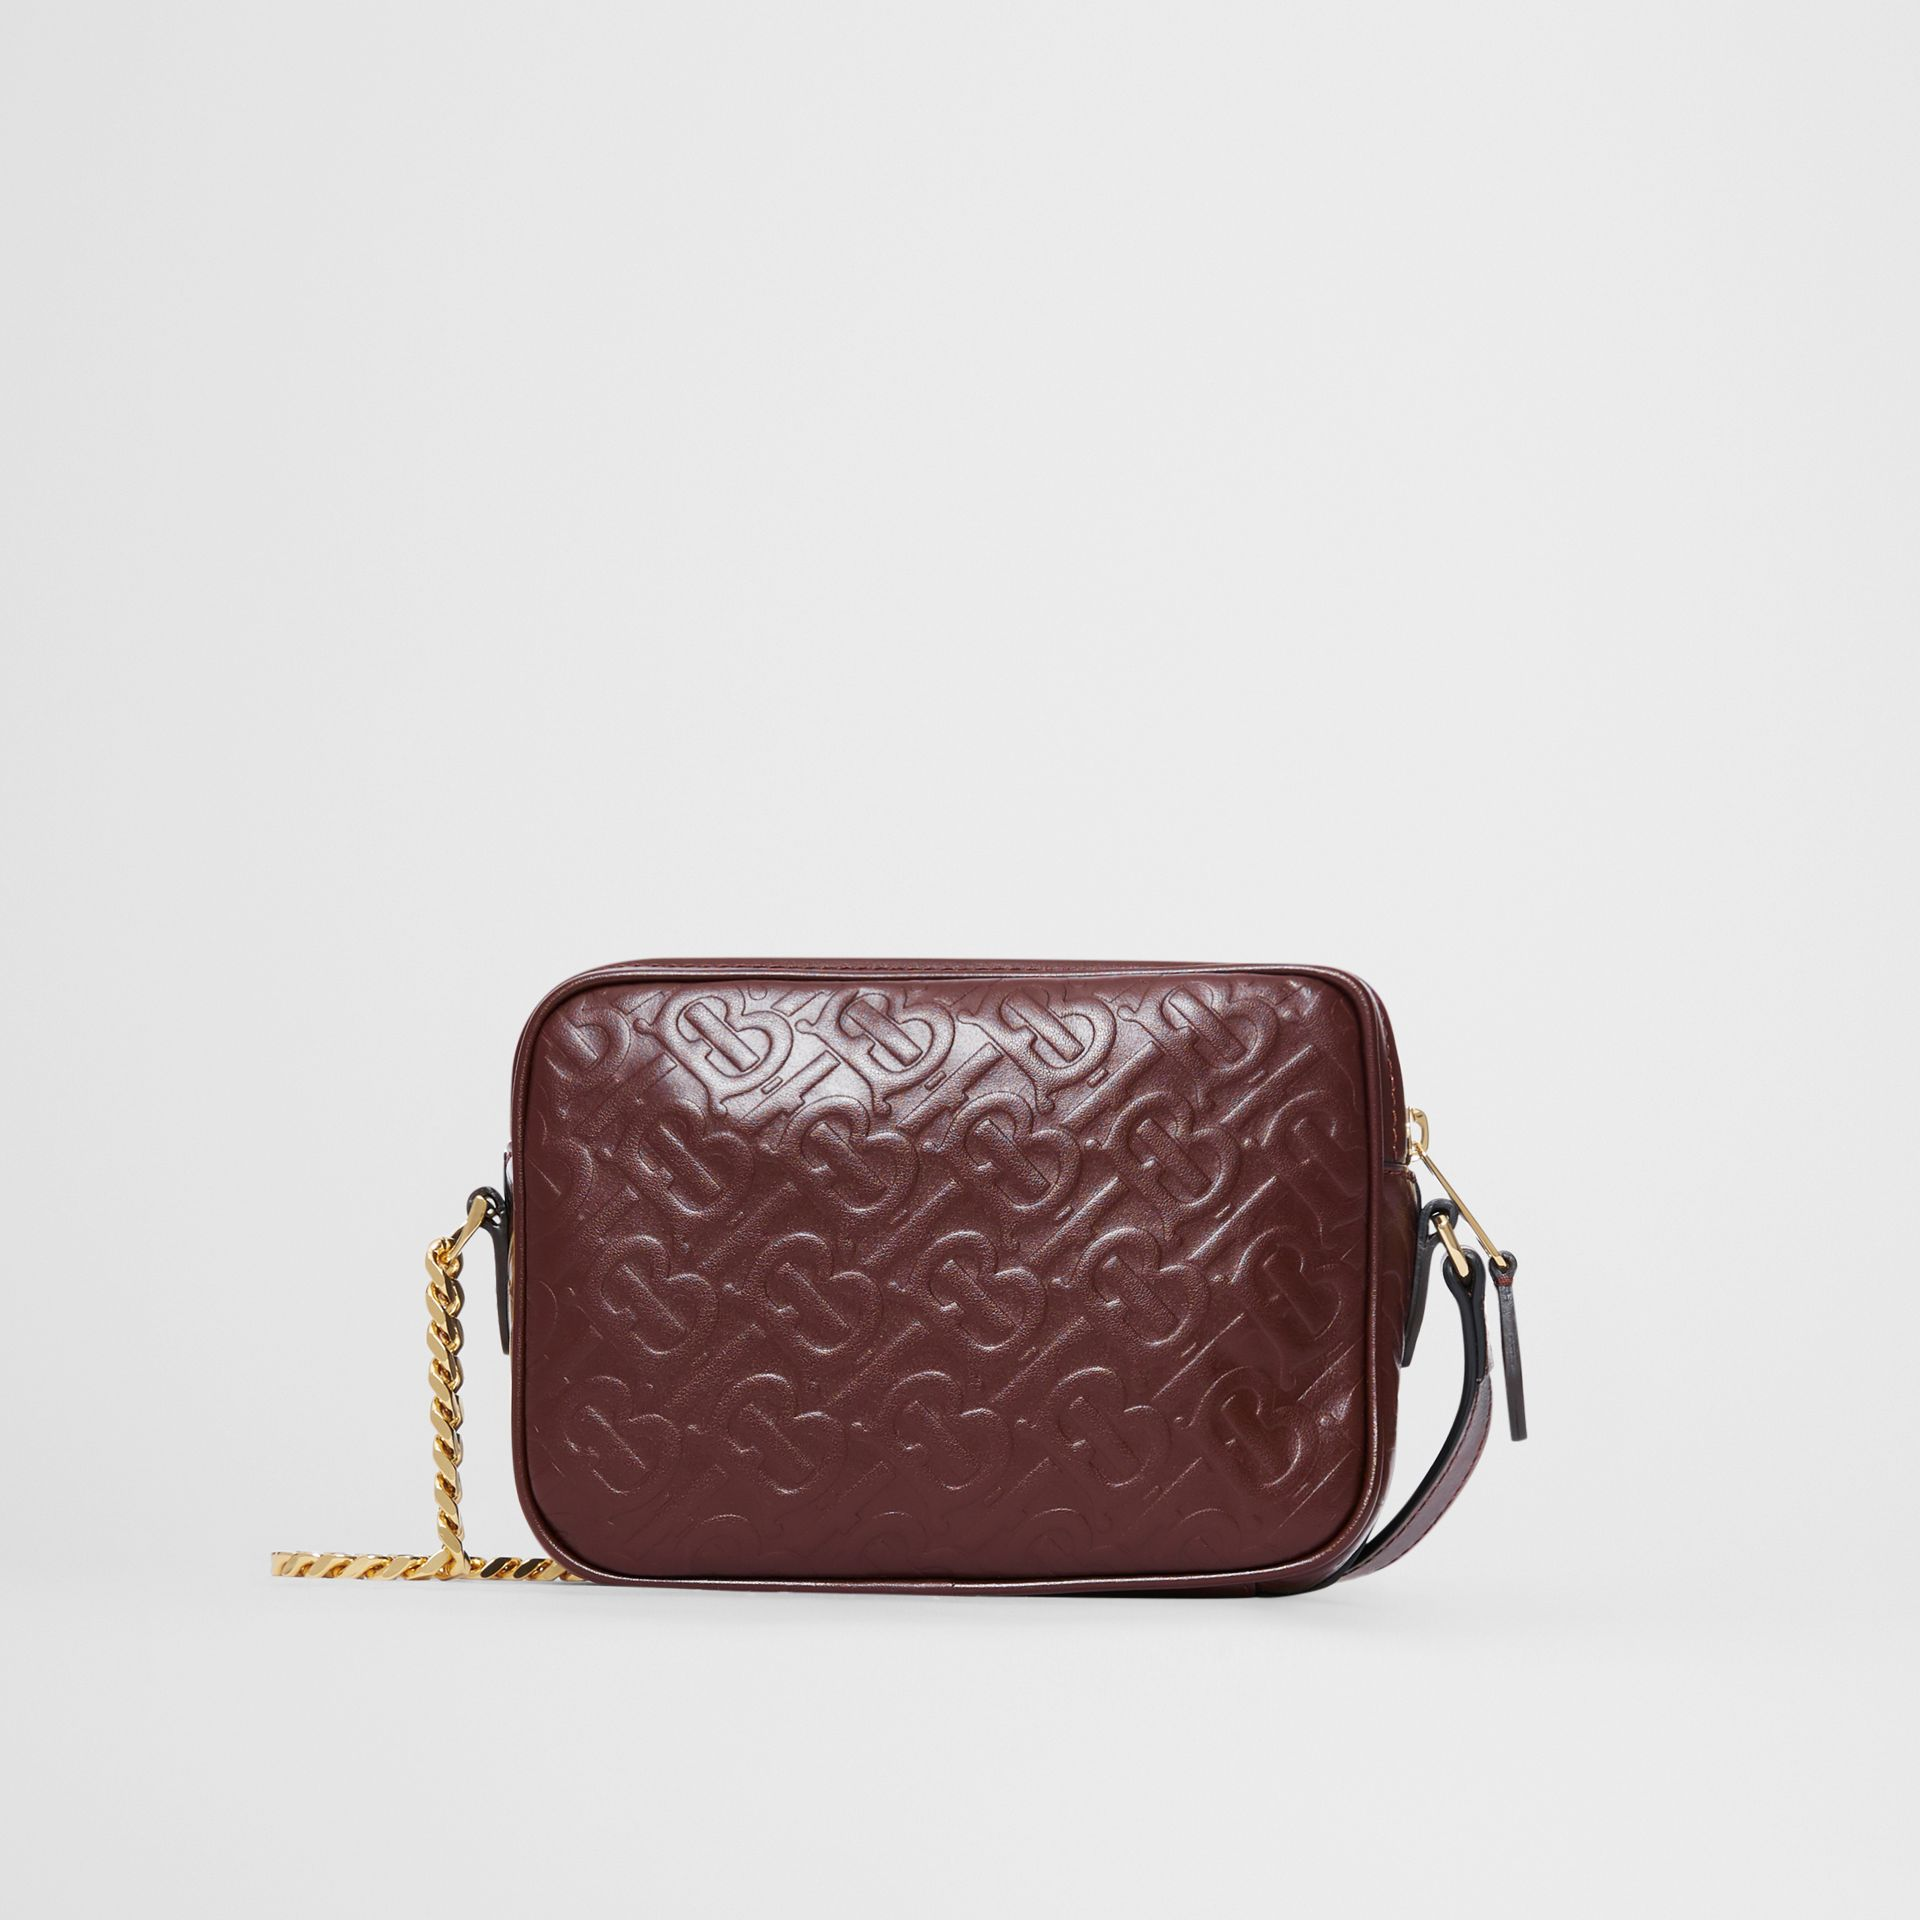 Monogram Leather Camera Bag in Dark Burgundy - Women | Burberry United States - gallery image 5